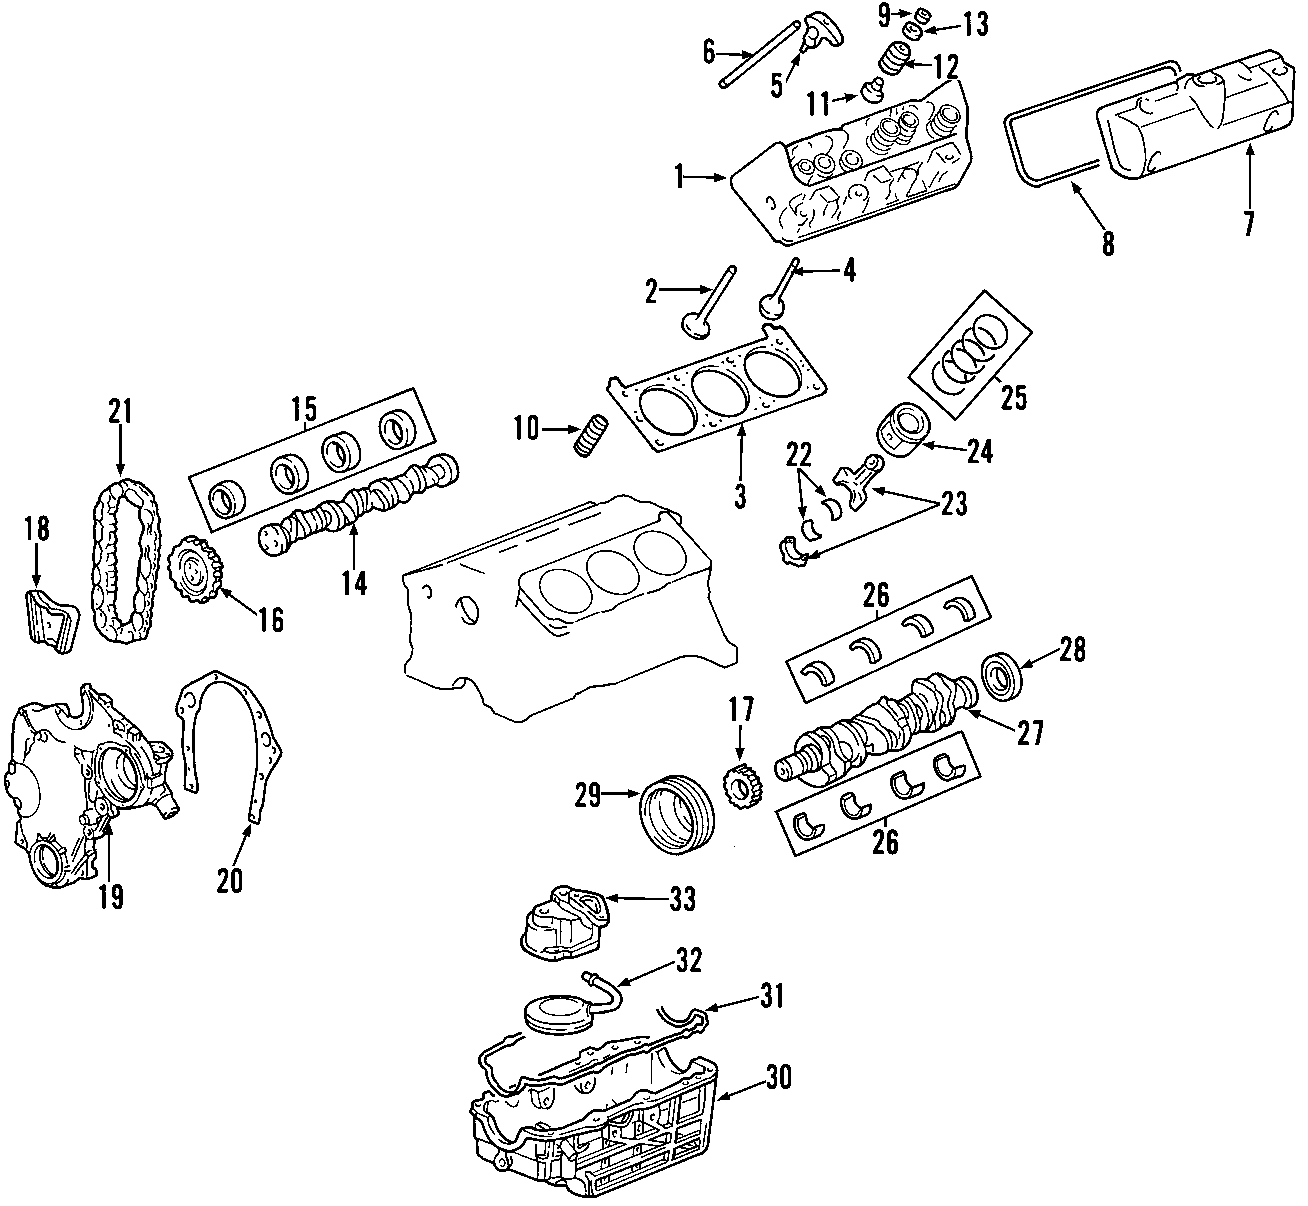 Chevrolet Impala Timing. Engine. ACTUATOR. CAMSHAFT